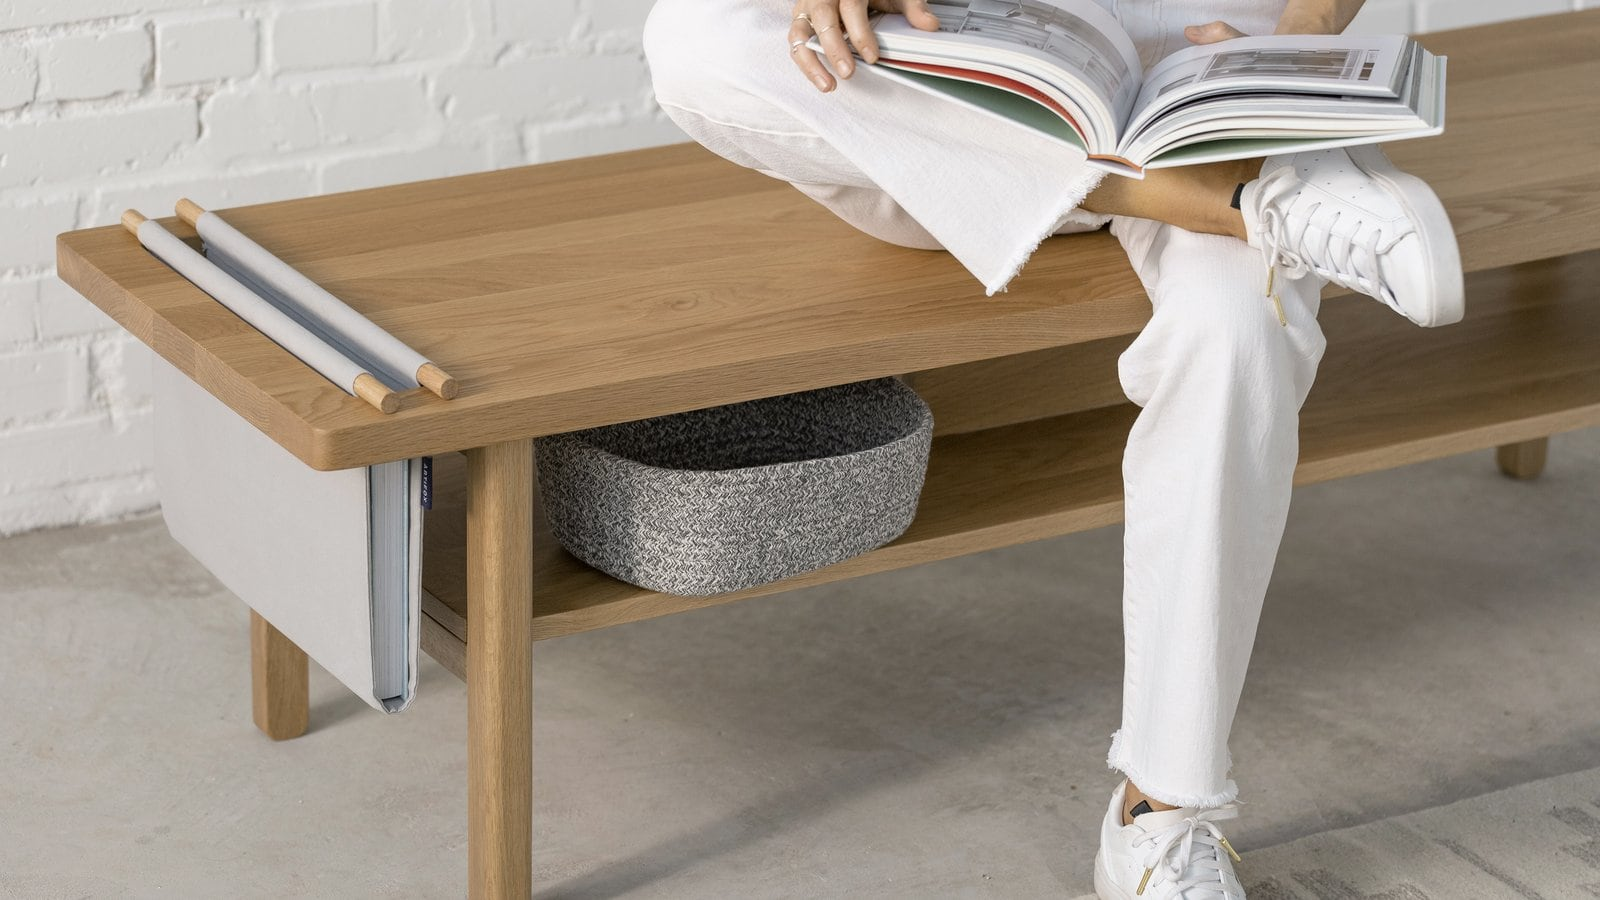 ARTIFOX Solid Hardwood Bench provides a variety of storage solutions